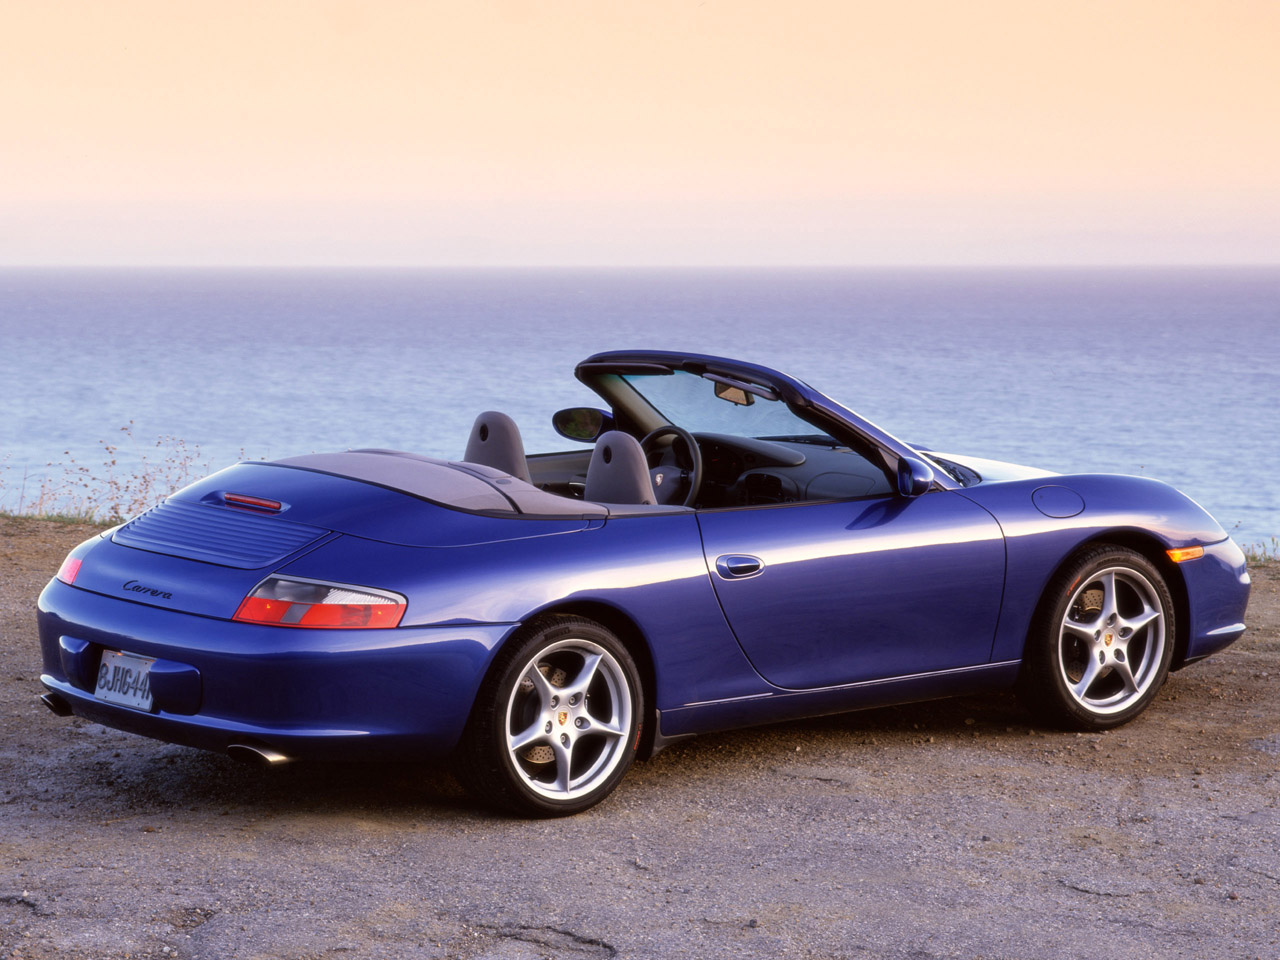 Porsche 911 Carrera Cabriolet 800x600 Wallpaper